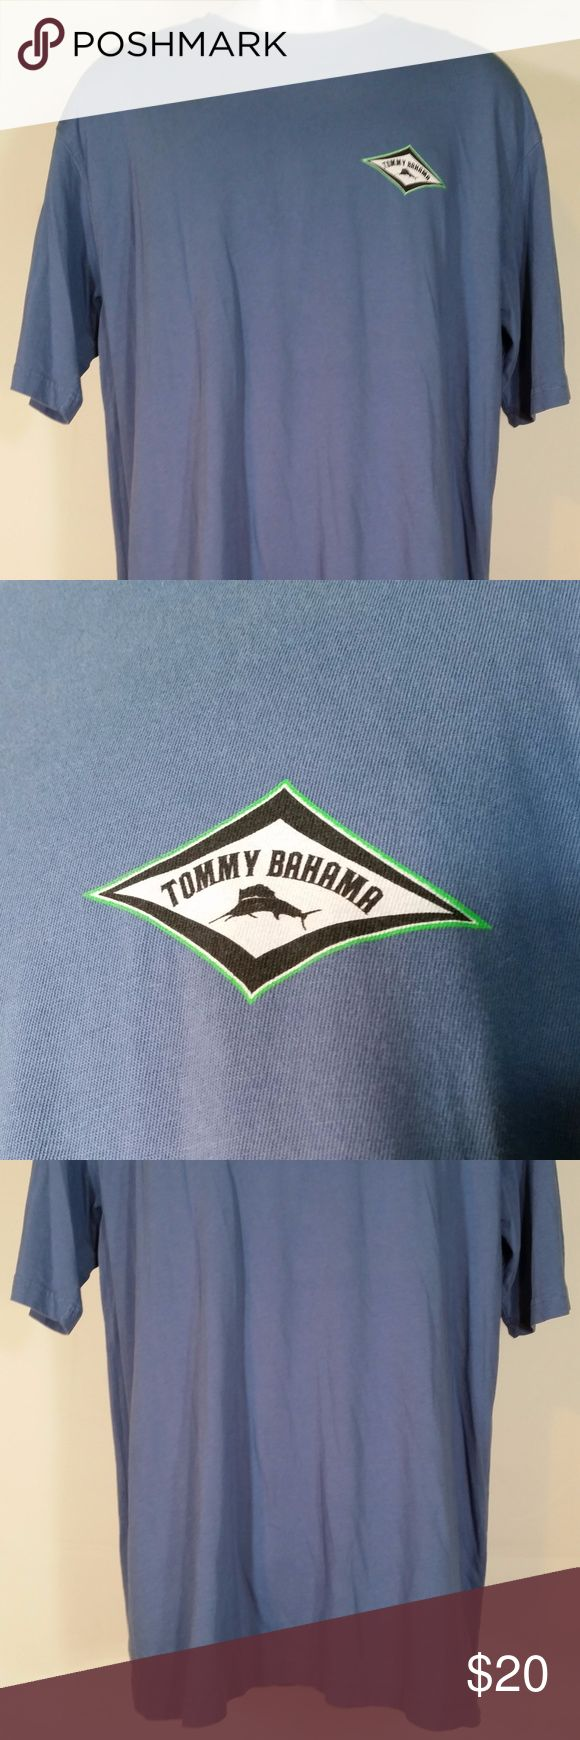 "Tommy Bahama blue Pay Per View t-shirt size M -Item: men's short sleeve graphic t-shirt   -Brand: Tommy Bahama  -Size: M  -Color: blue  -Condition: Excellent  -Fabric Content: 100% cotton  -Special Details/Notes: front has a small diamond shape with the Marlin logo inside it on the left side of the chest. back has a colorful illustration of a pay telescope/binoculars with the words ""The Original Pay Per View"" written underneath it. Unique! Would make a great gift!   - Measurements lying…"